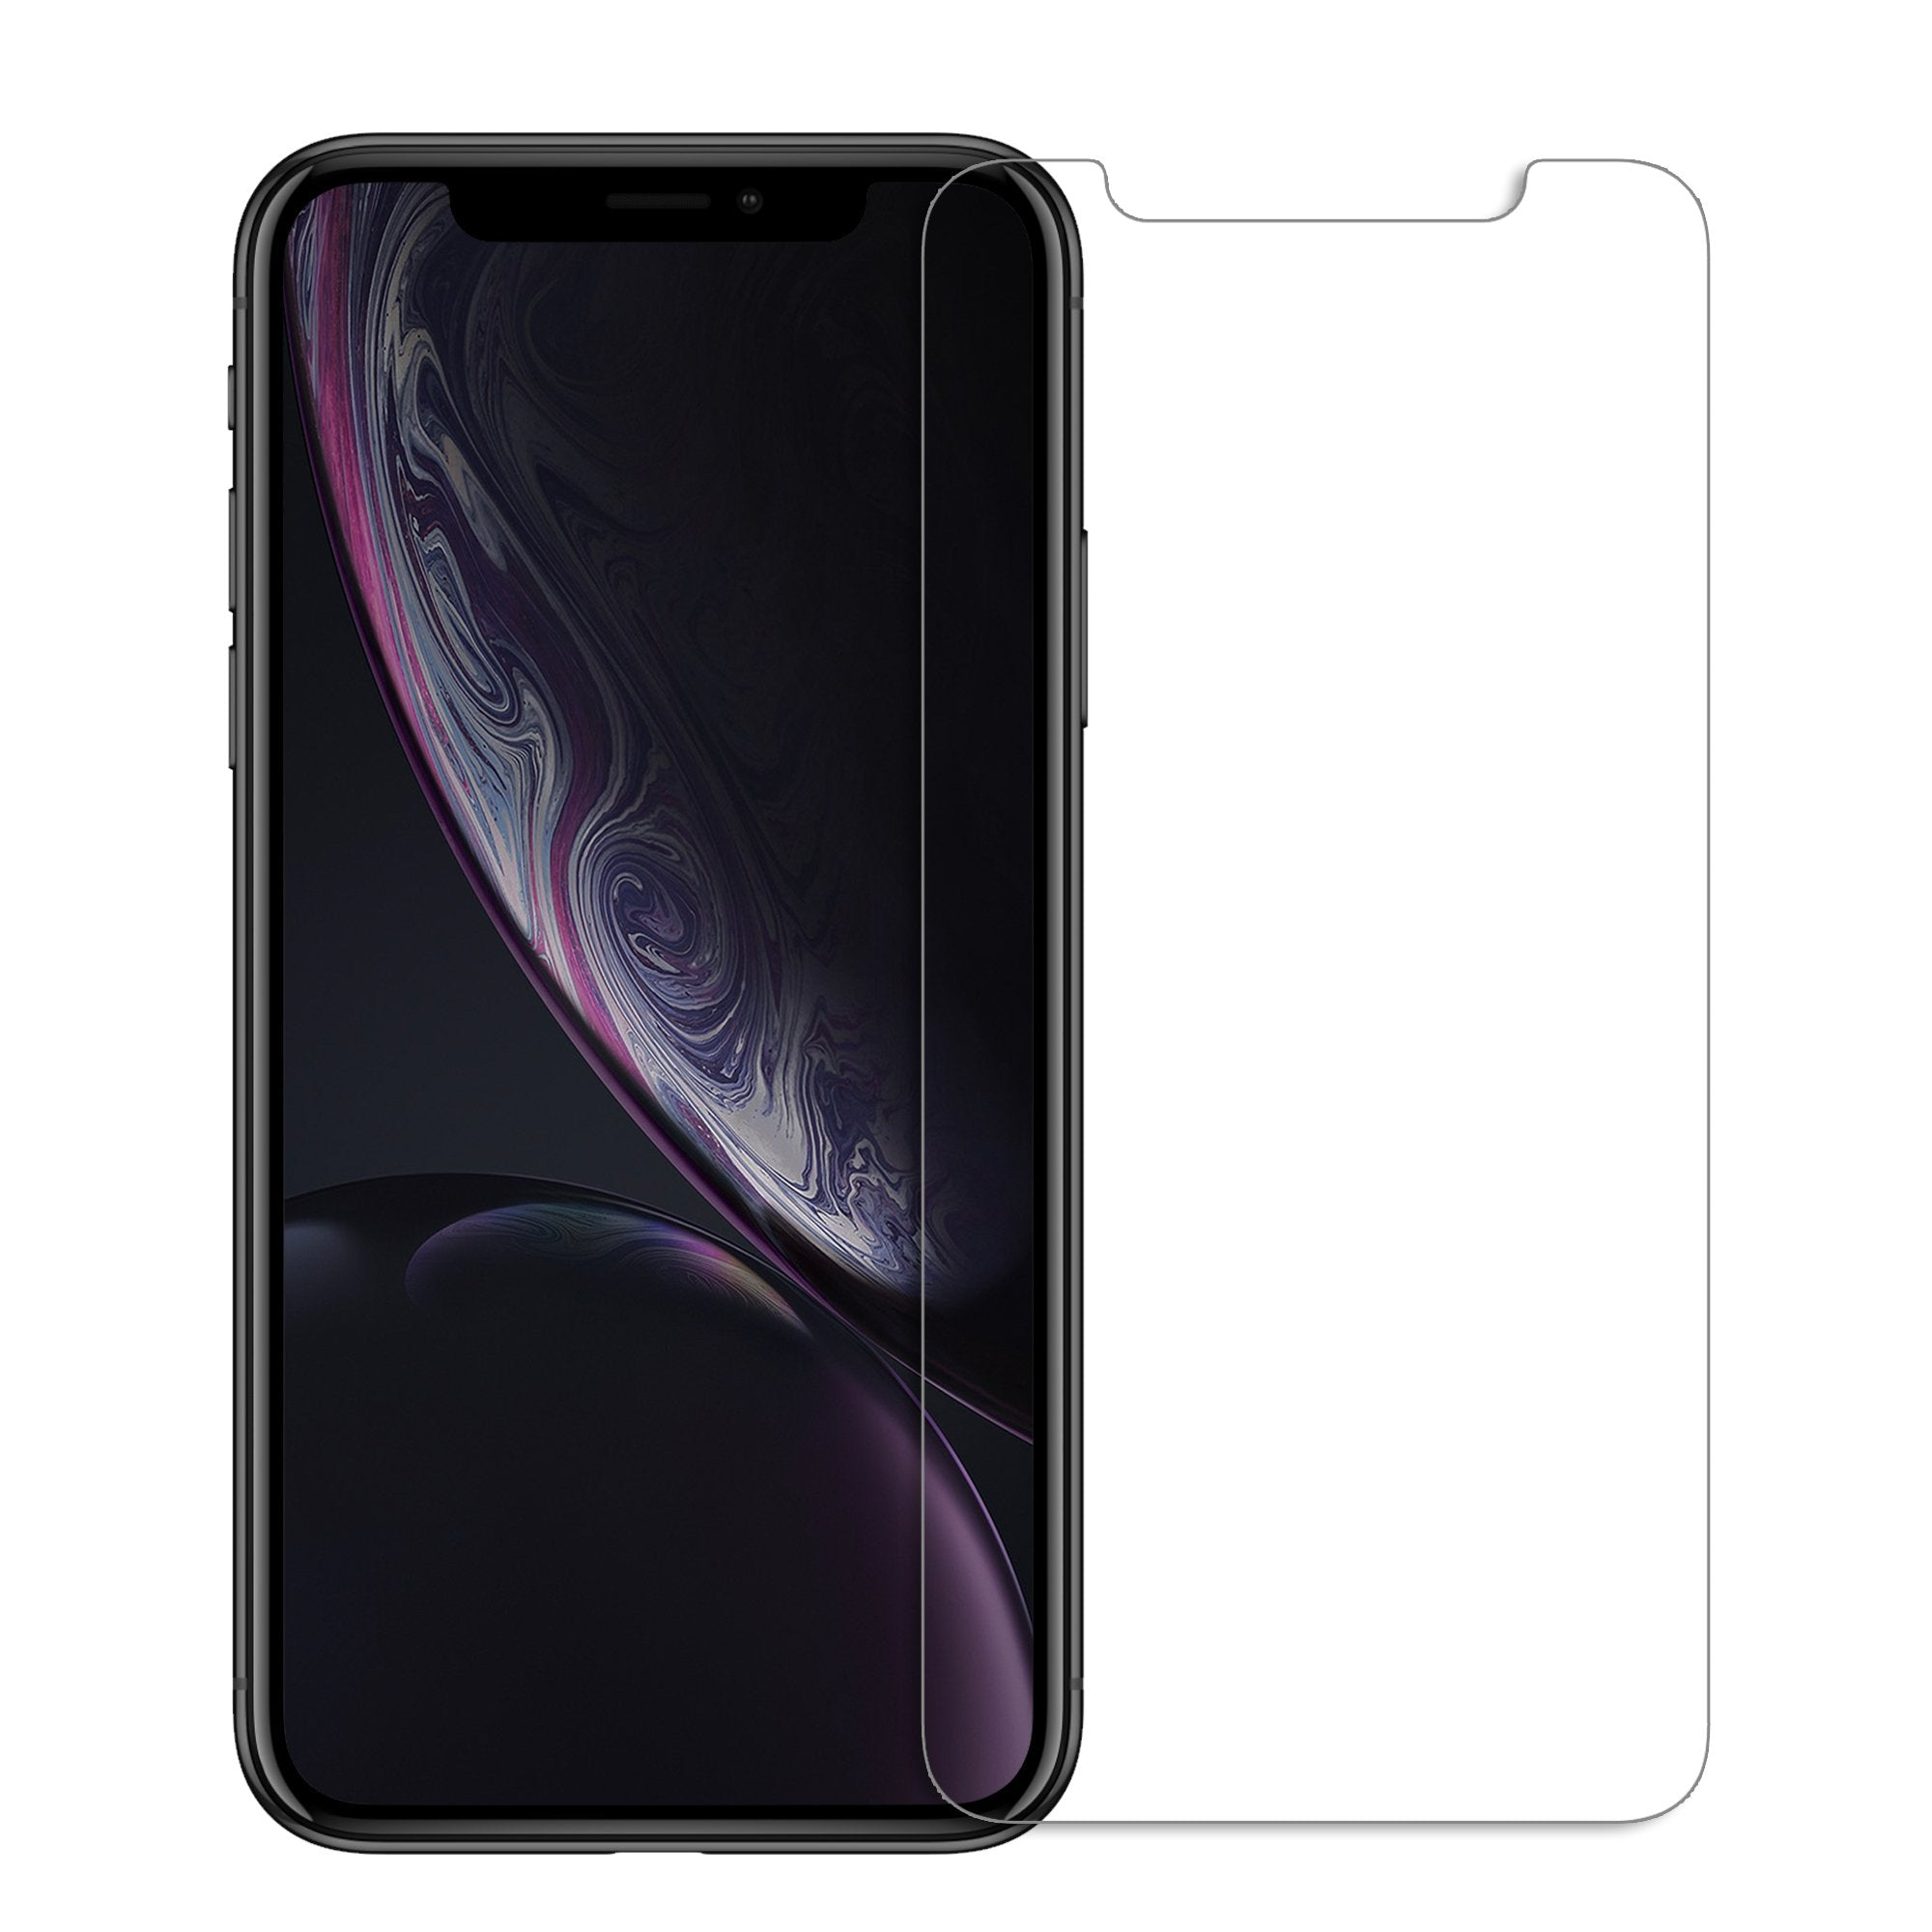 FLOLAB NanoArmour iPhone XR 2.5D Case Friendly Tempered Glass Screen Protector